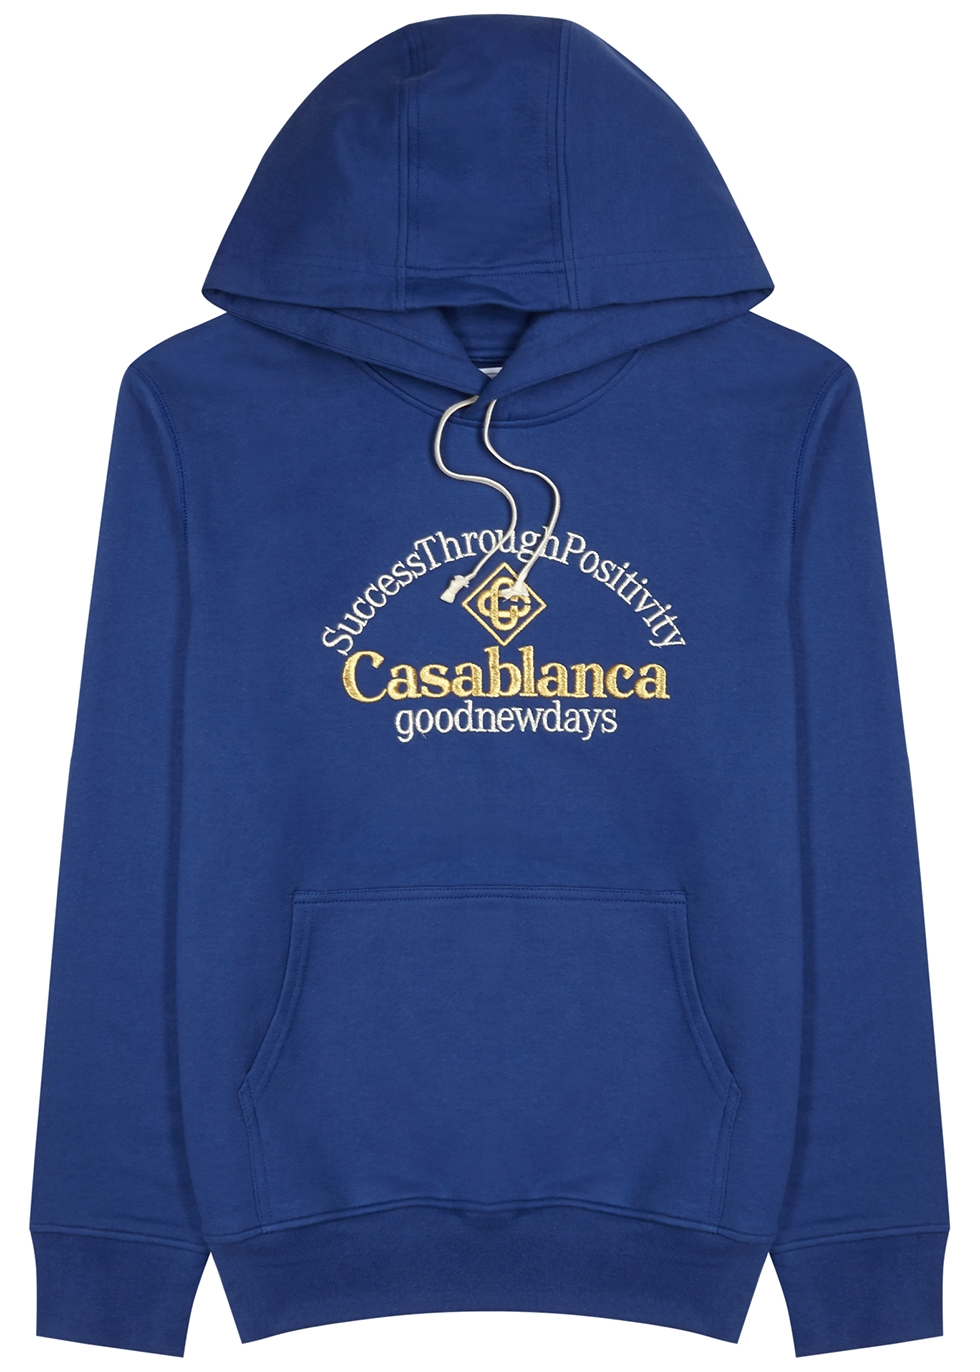 Blue hooded embroidered cotton sweatshirt